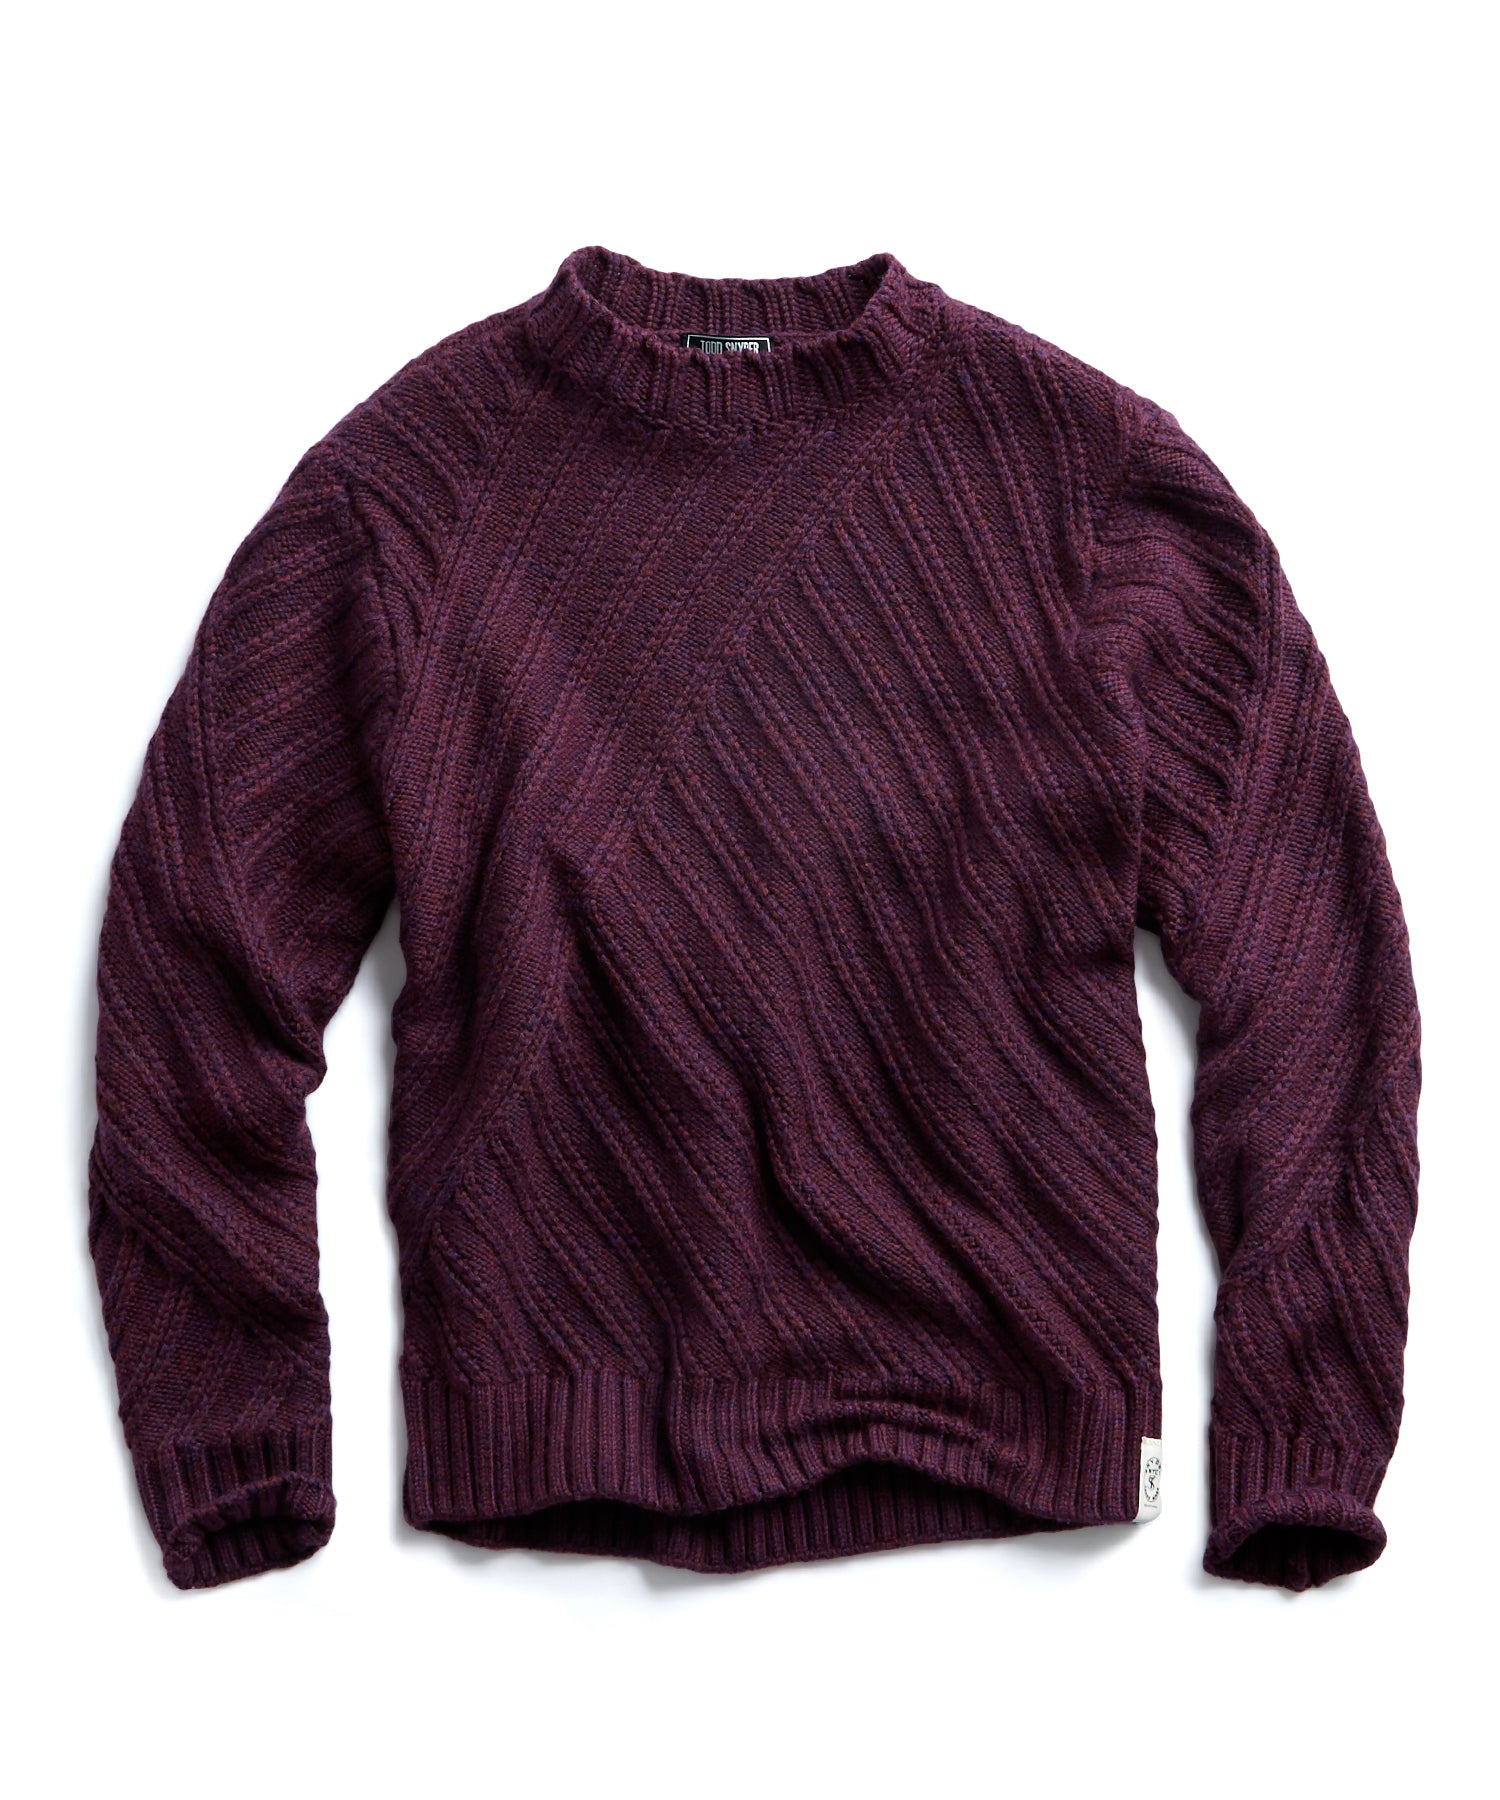 Hand Knit Cable Crewneck Sweater in Maroon